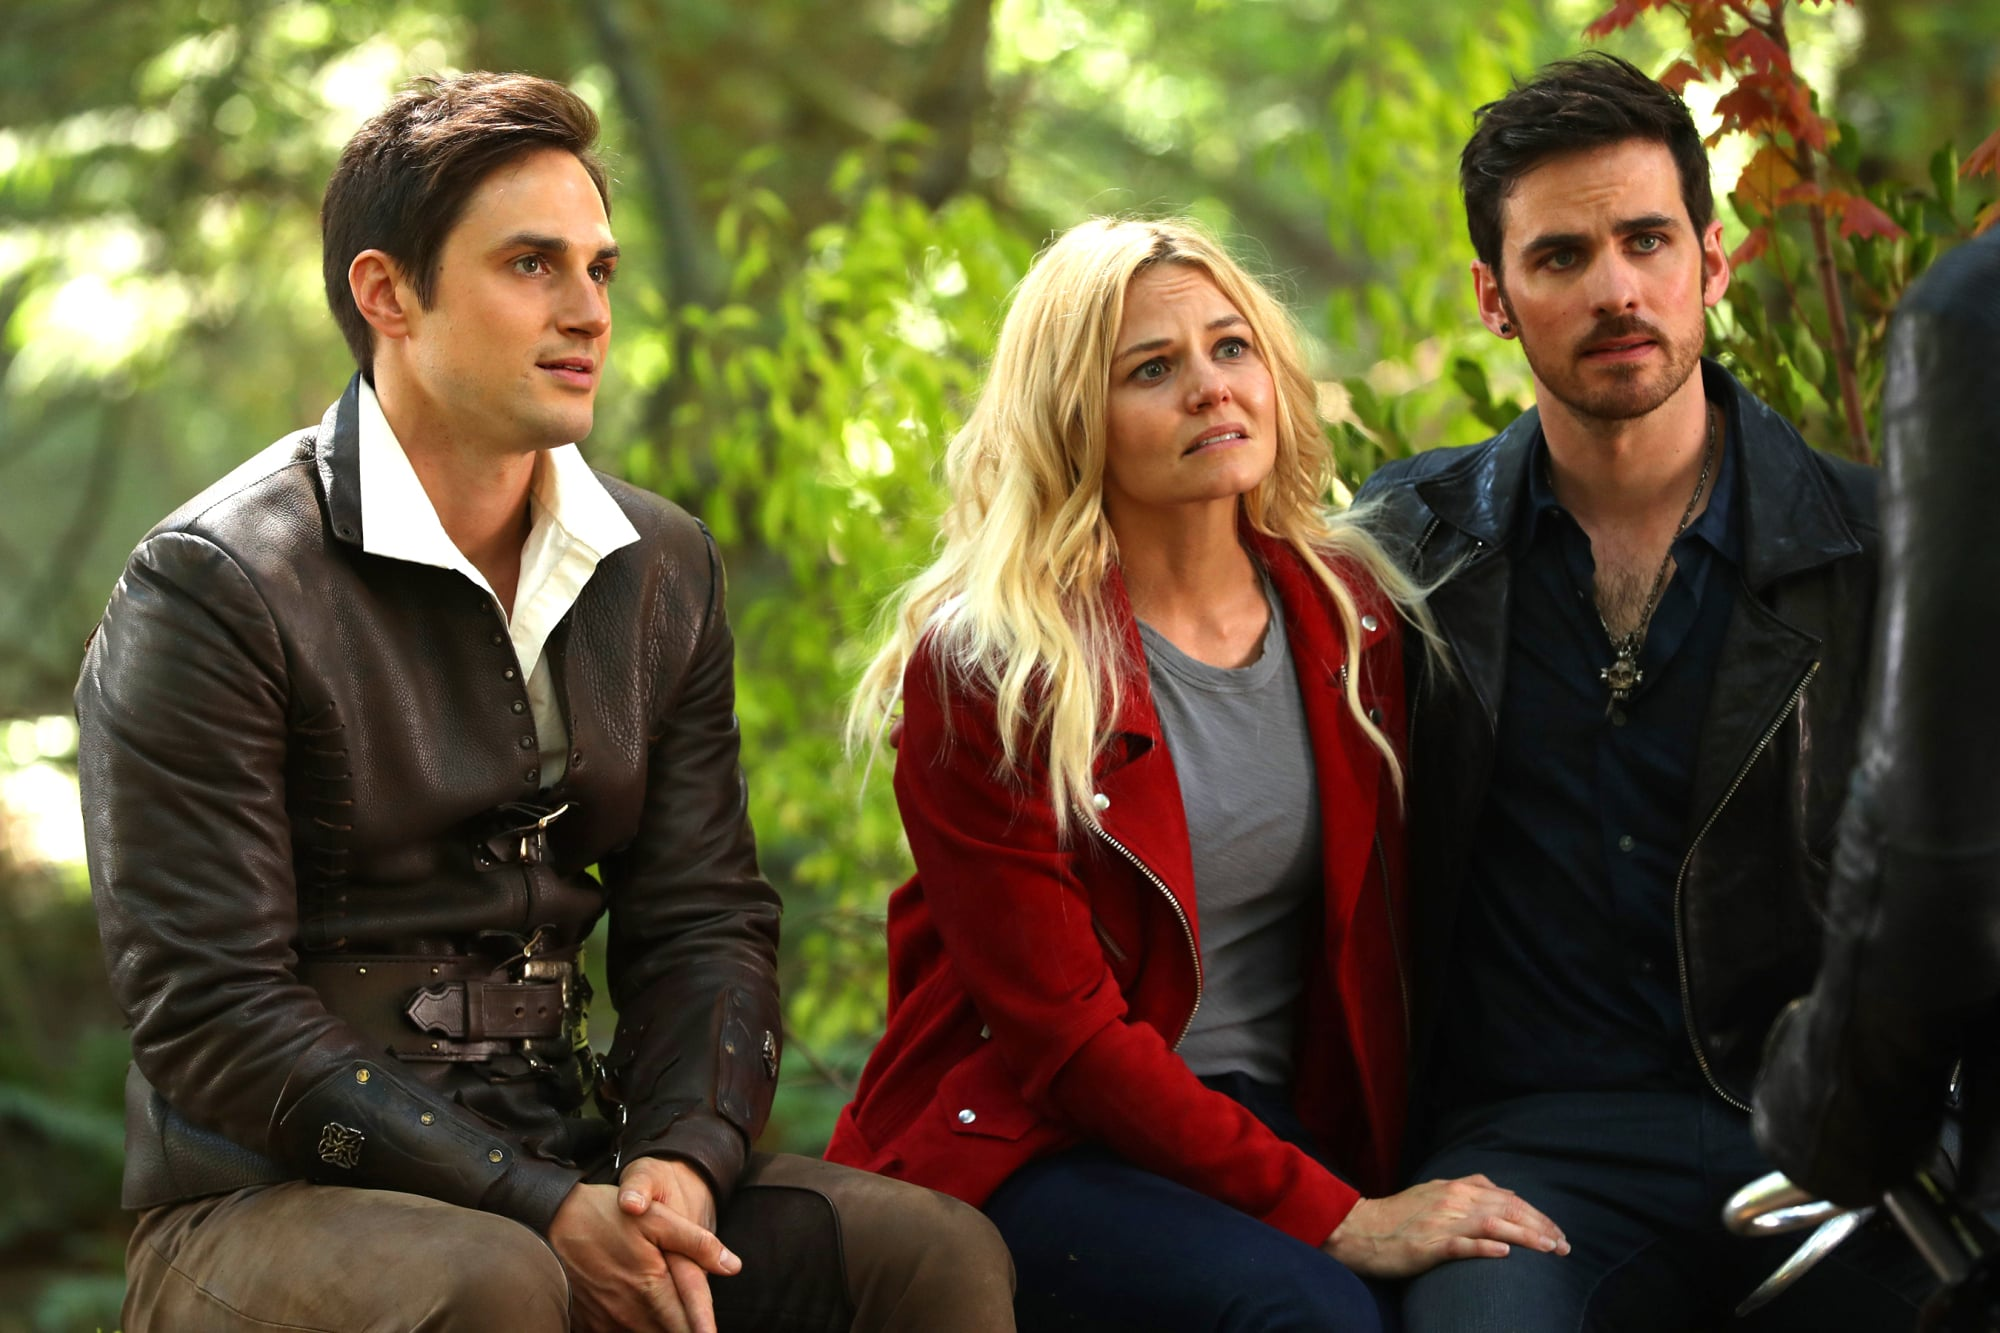 When Will Once Upon a Time Season 7 Be on Netflix